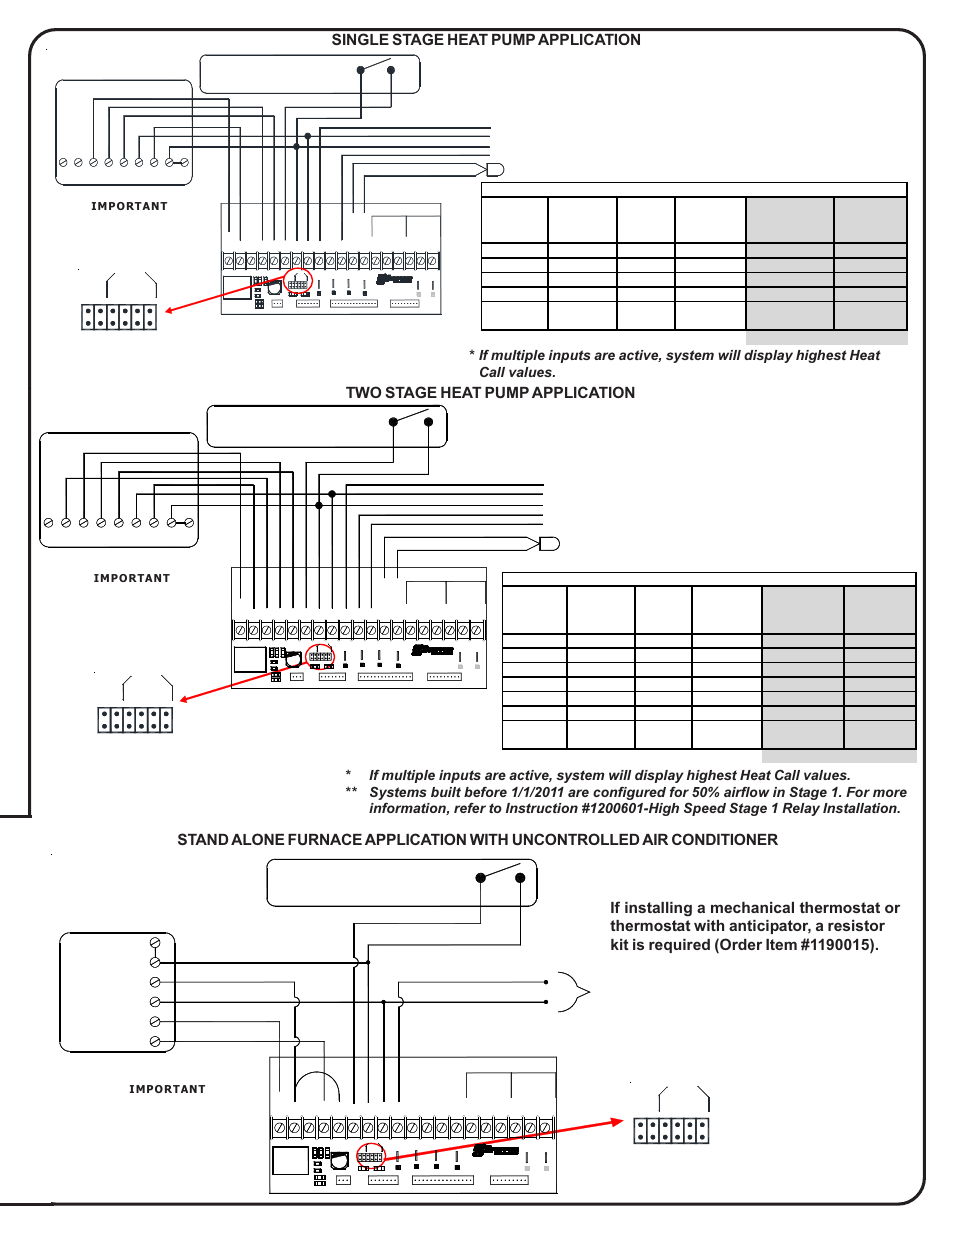 medium resolution of two stage heat pump application rc w y y1 compressor y2 compressor stage 2 steffes 5140 simplified installation guide user manual page 7 8